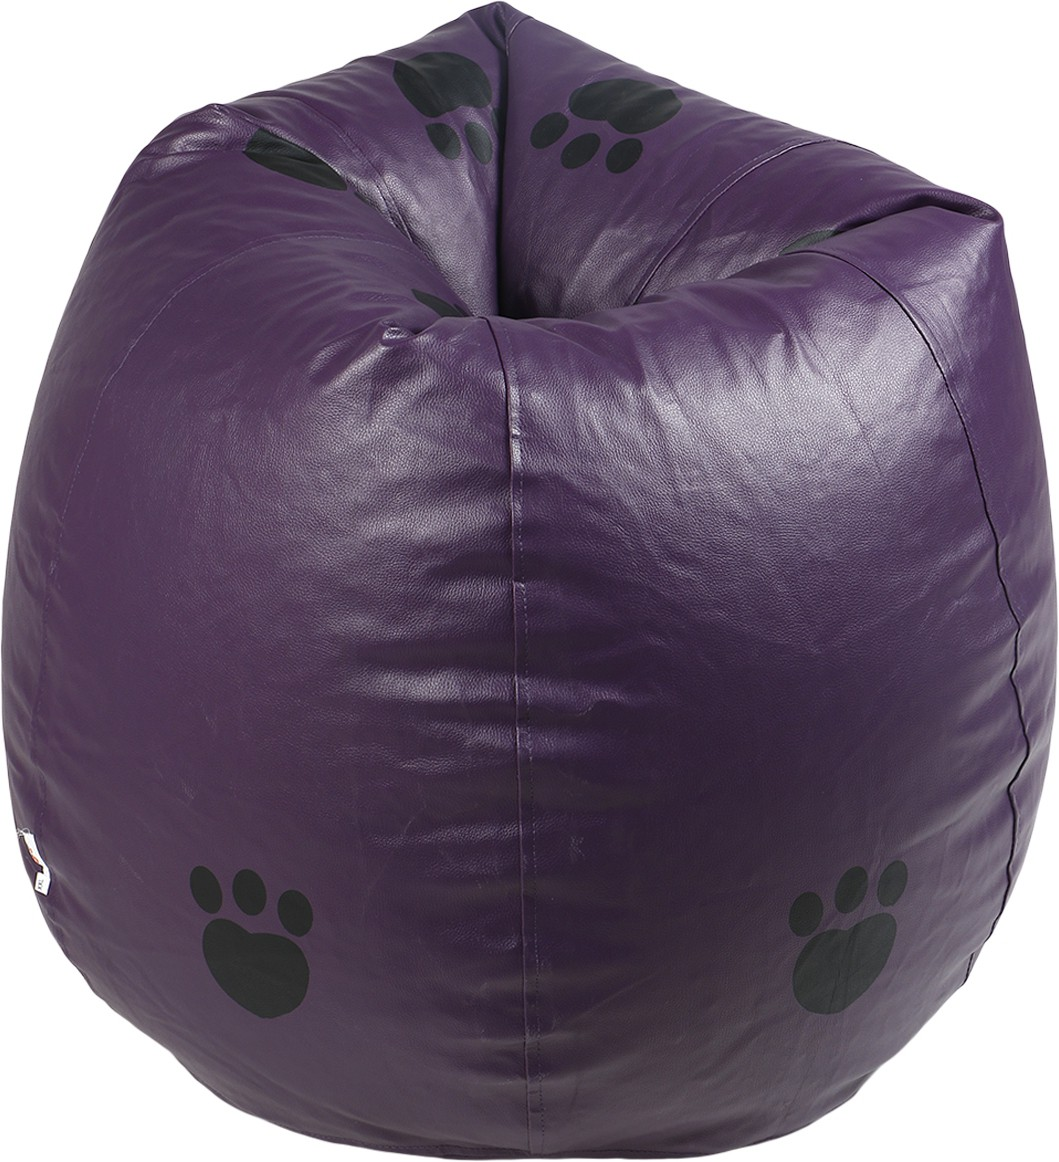 View Rehal XXXL Bean Bag Cover(Purple, Black) Furniture (Rehal)